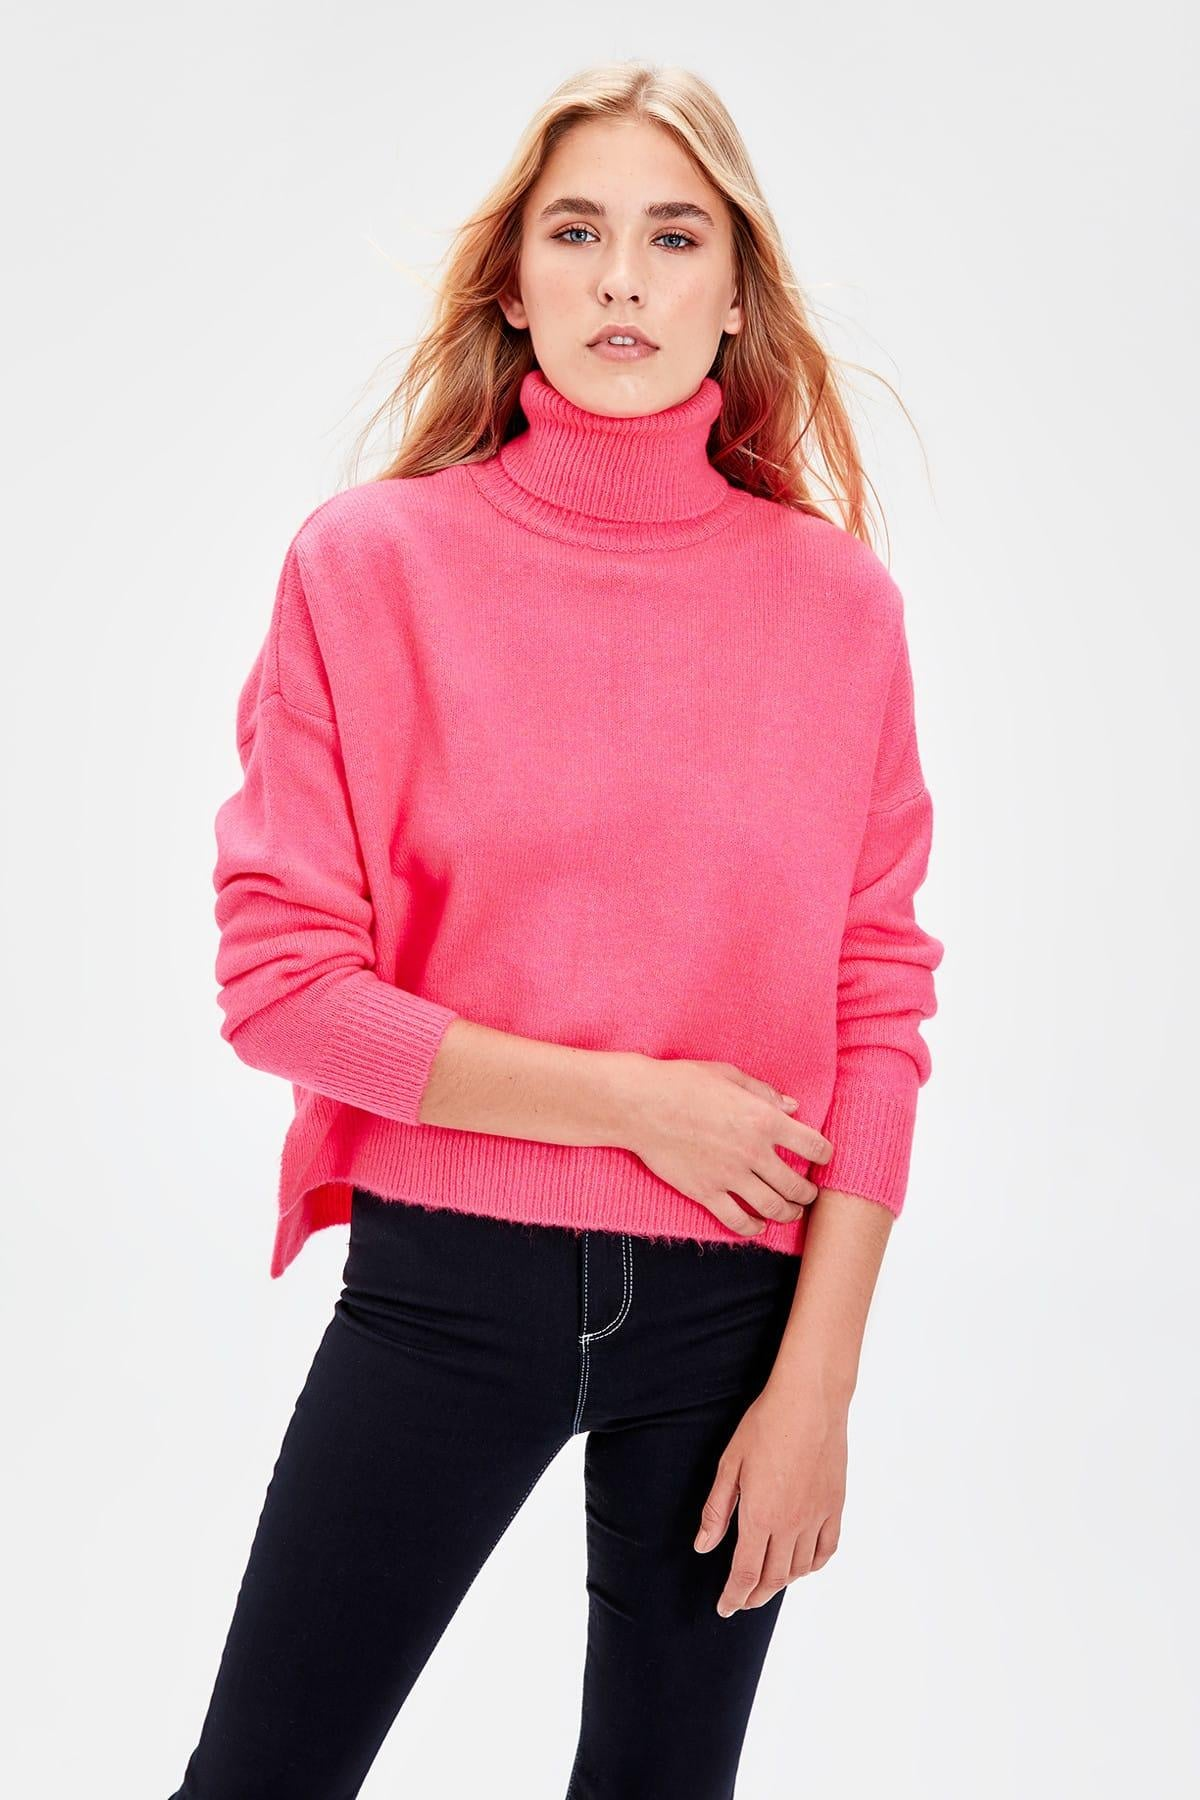 Back Zipper Sweater Turtleneck Pullovers